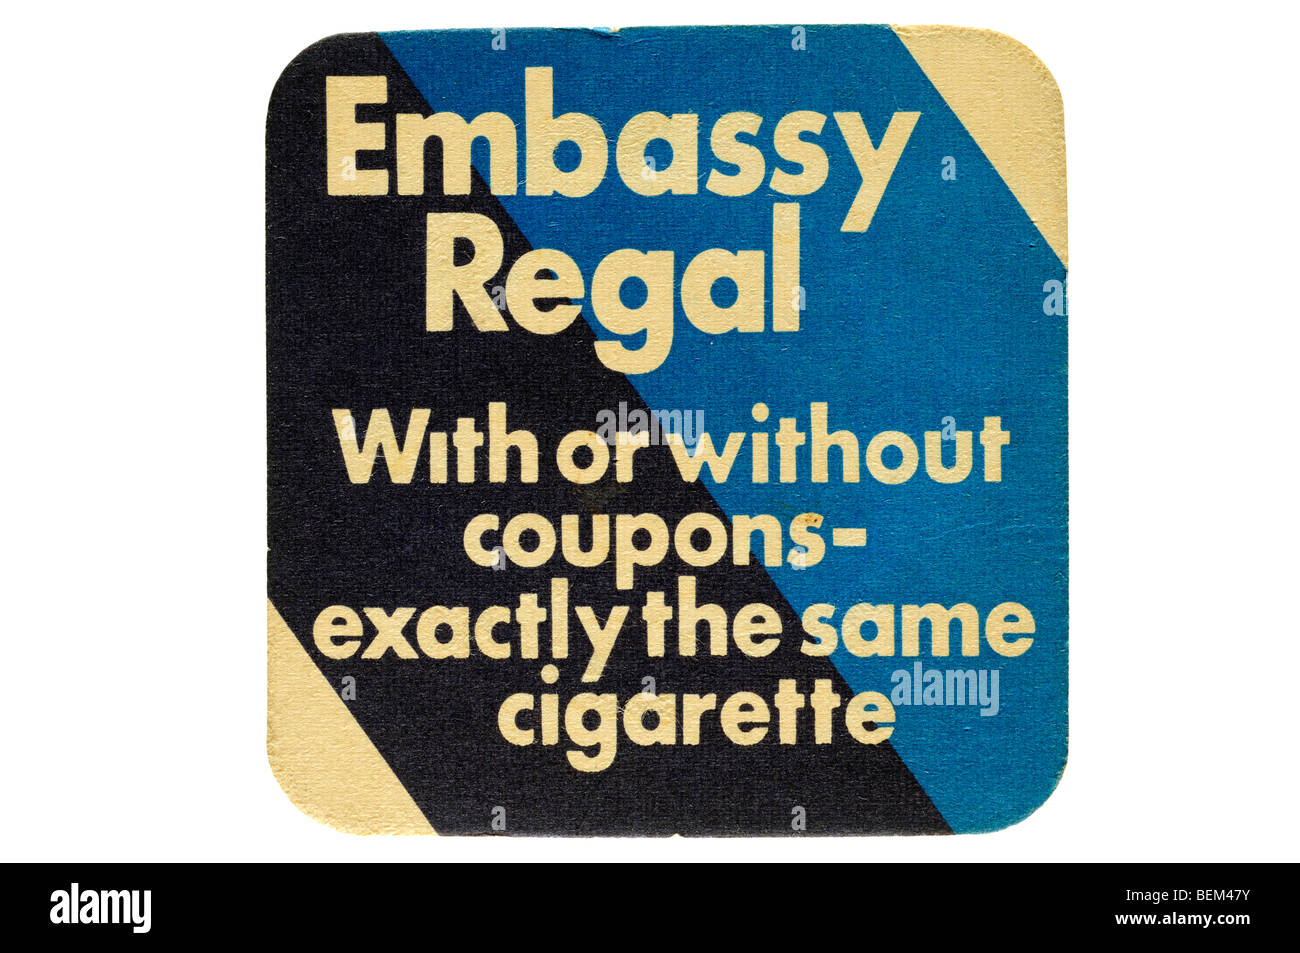 embassy regal with or without coupons exactly the same cigarette Stock Photo